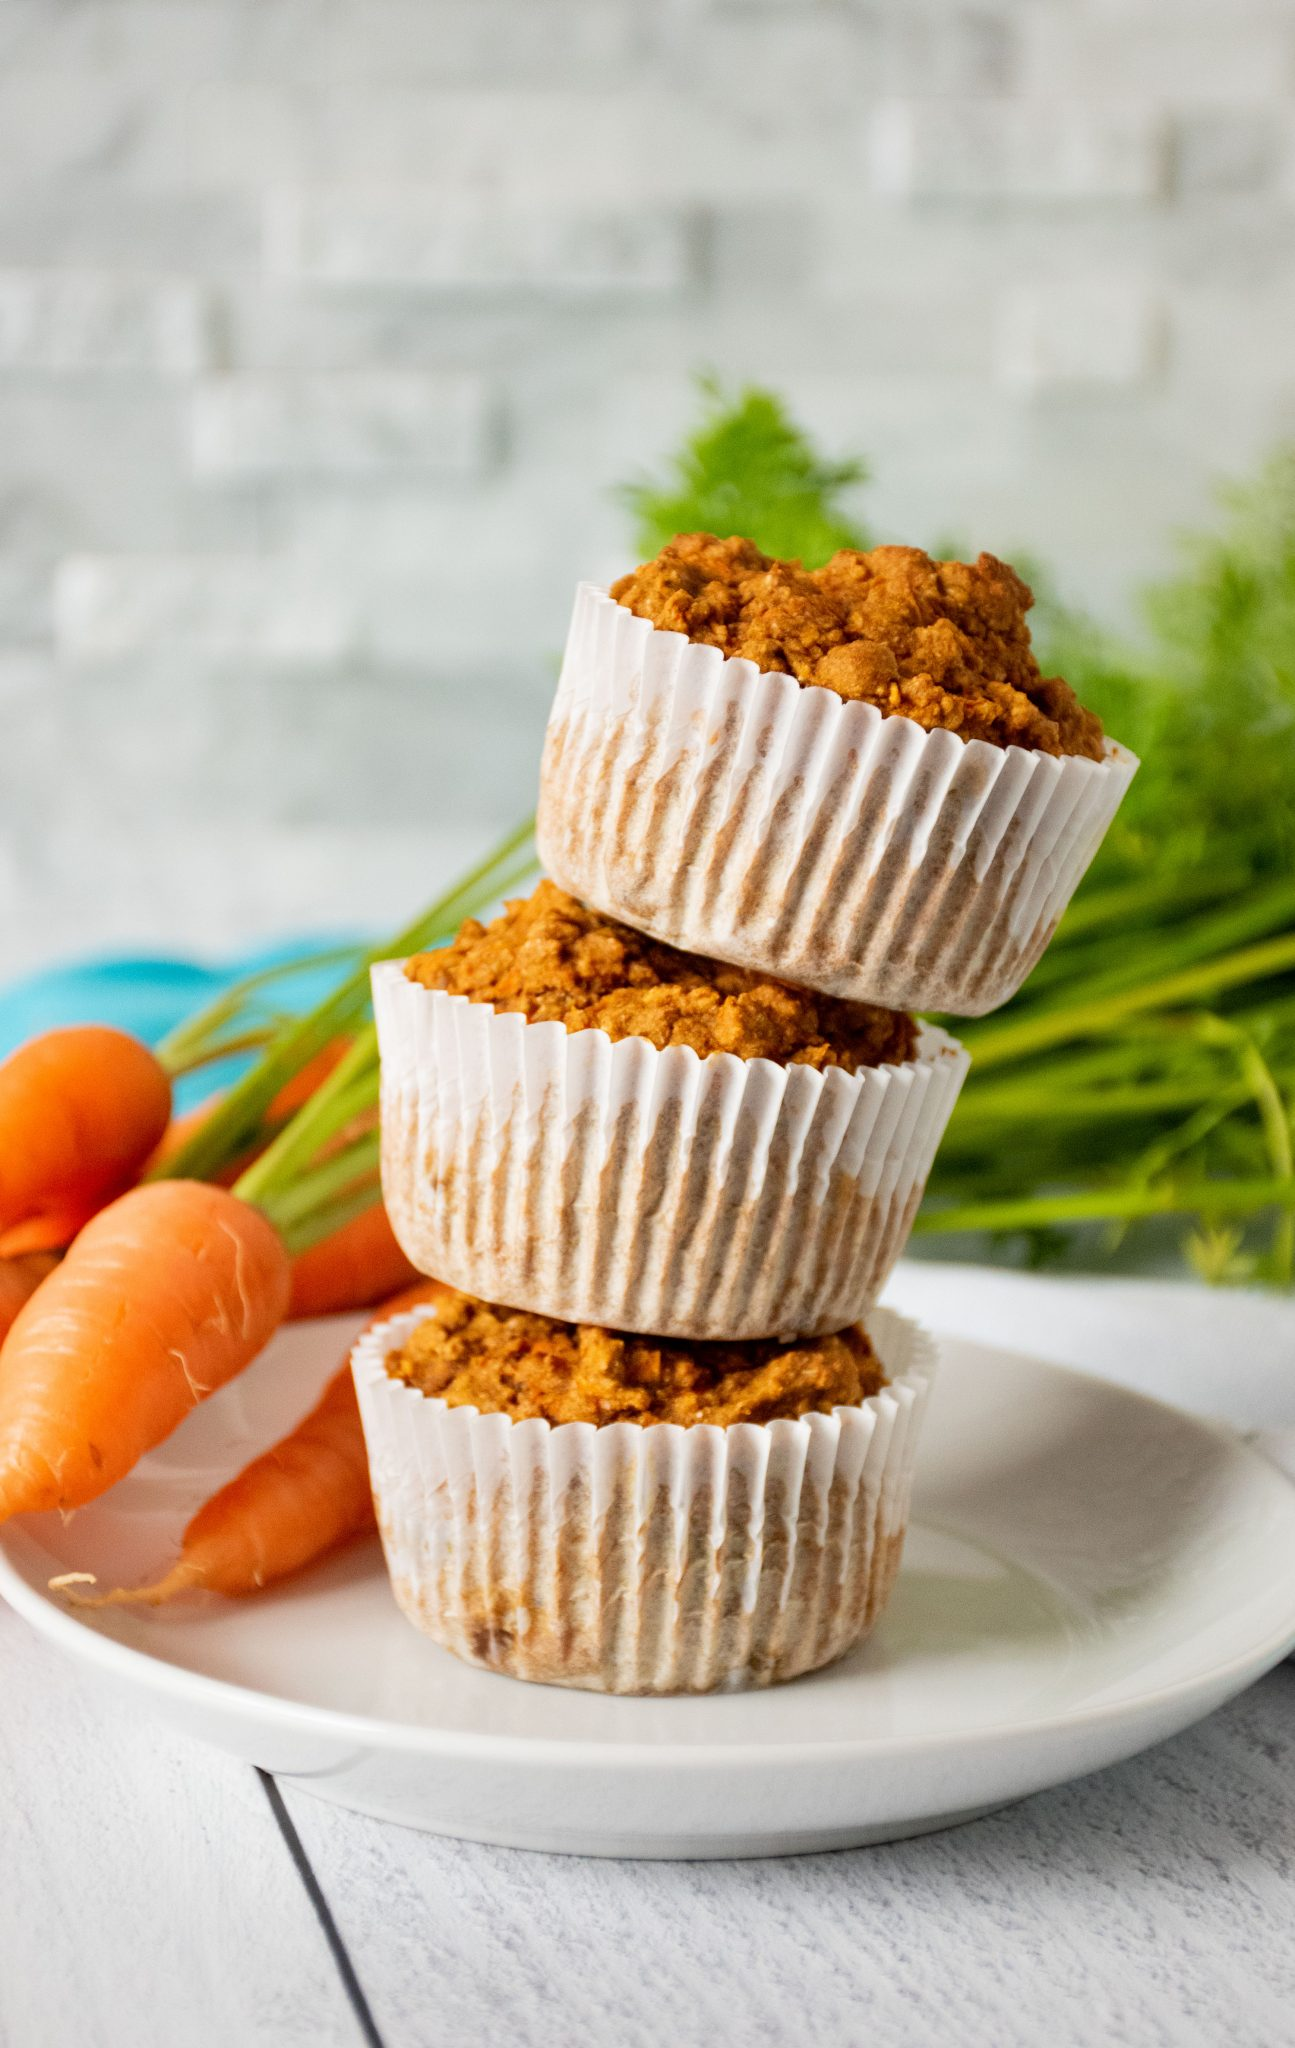 Stack of 3 muffins on a plate with fresh carrots in the background.